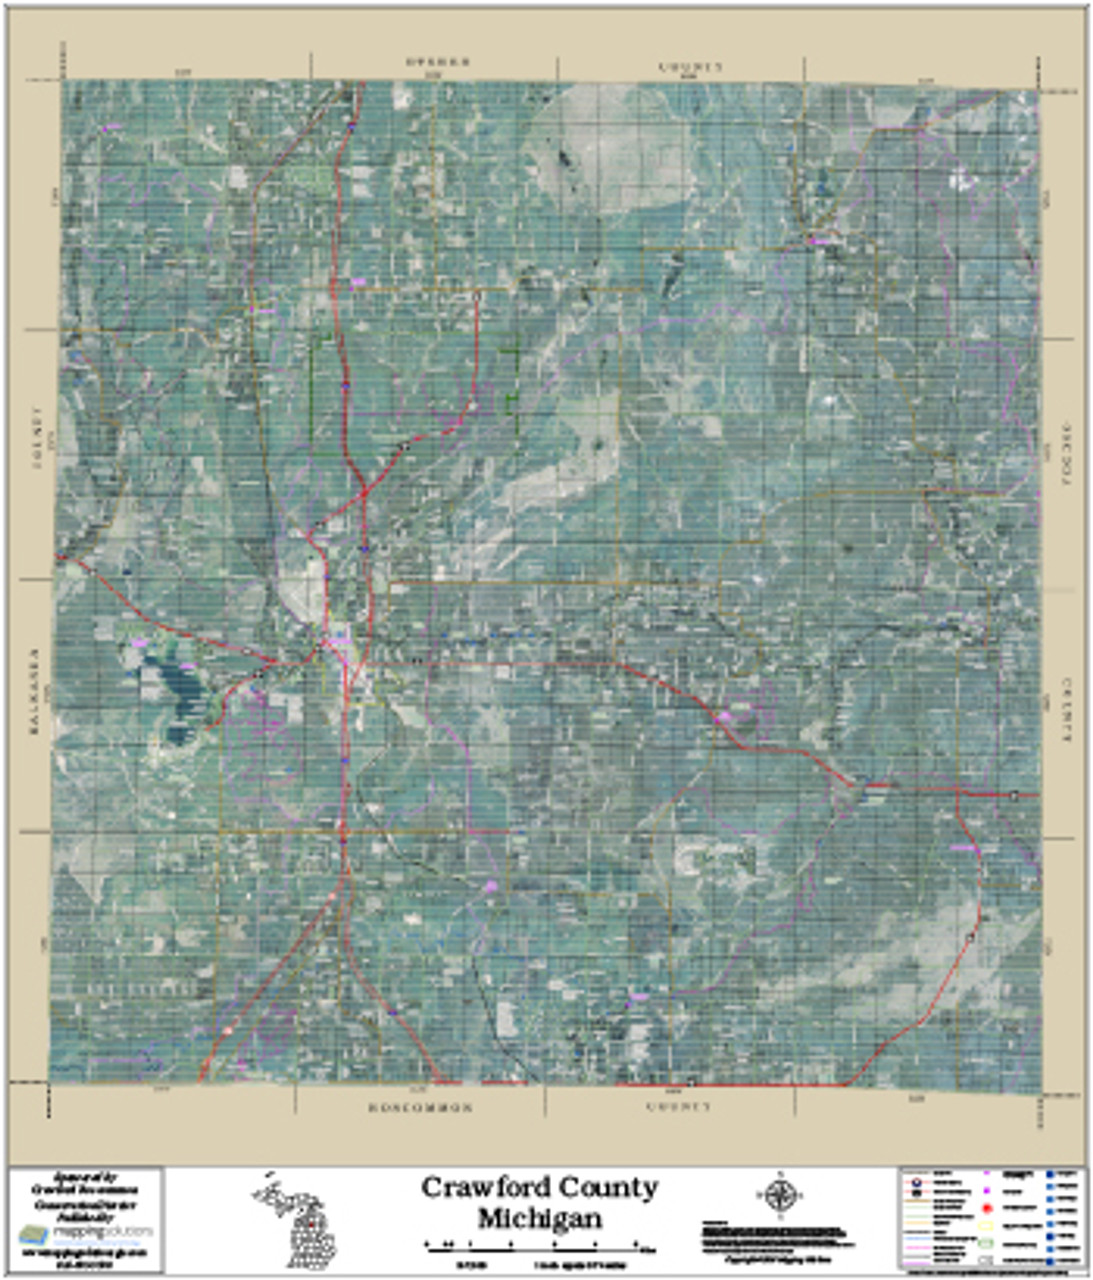 Crawford County Gis Mapping Crawford County Michigan 2017 Aerial Map, Crawford County Michigan